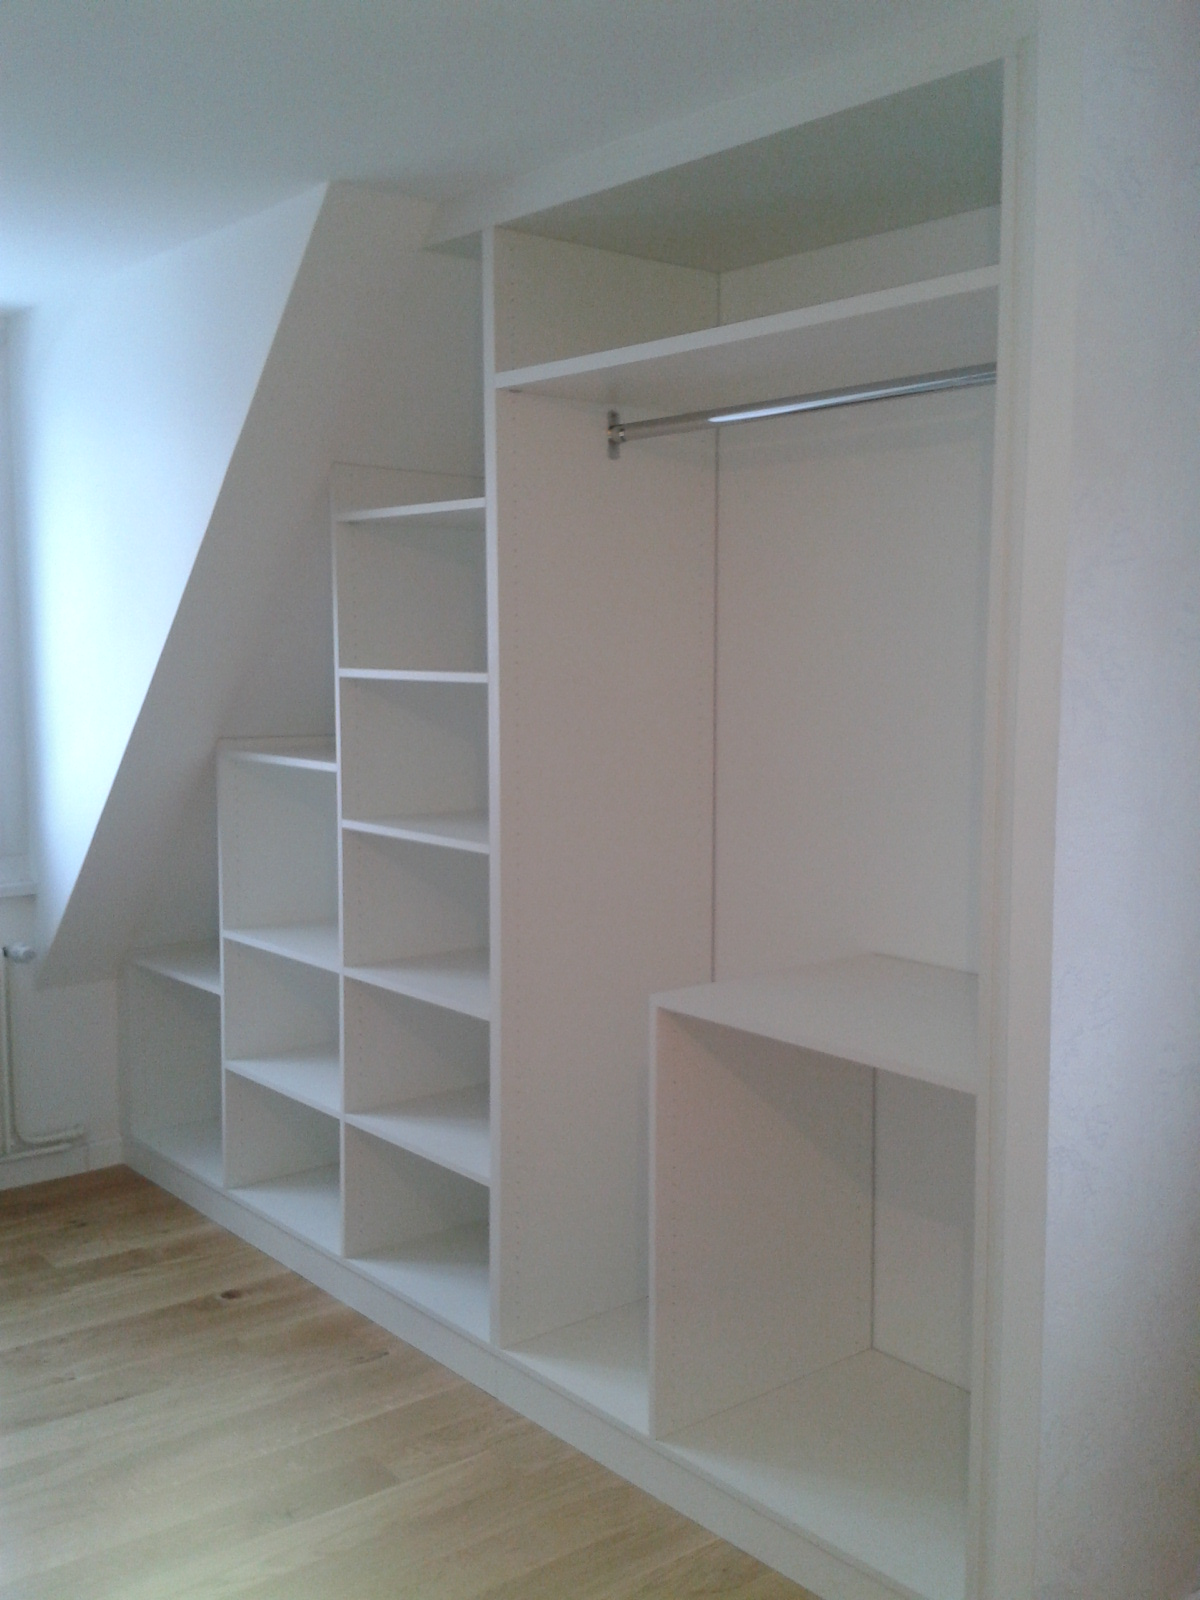 Dressing sous mansarde le kiosque amenagement for Armoire speciale sous pente